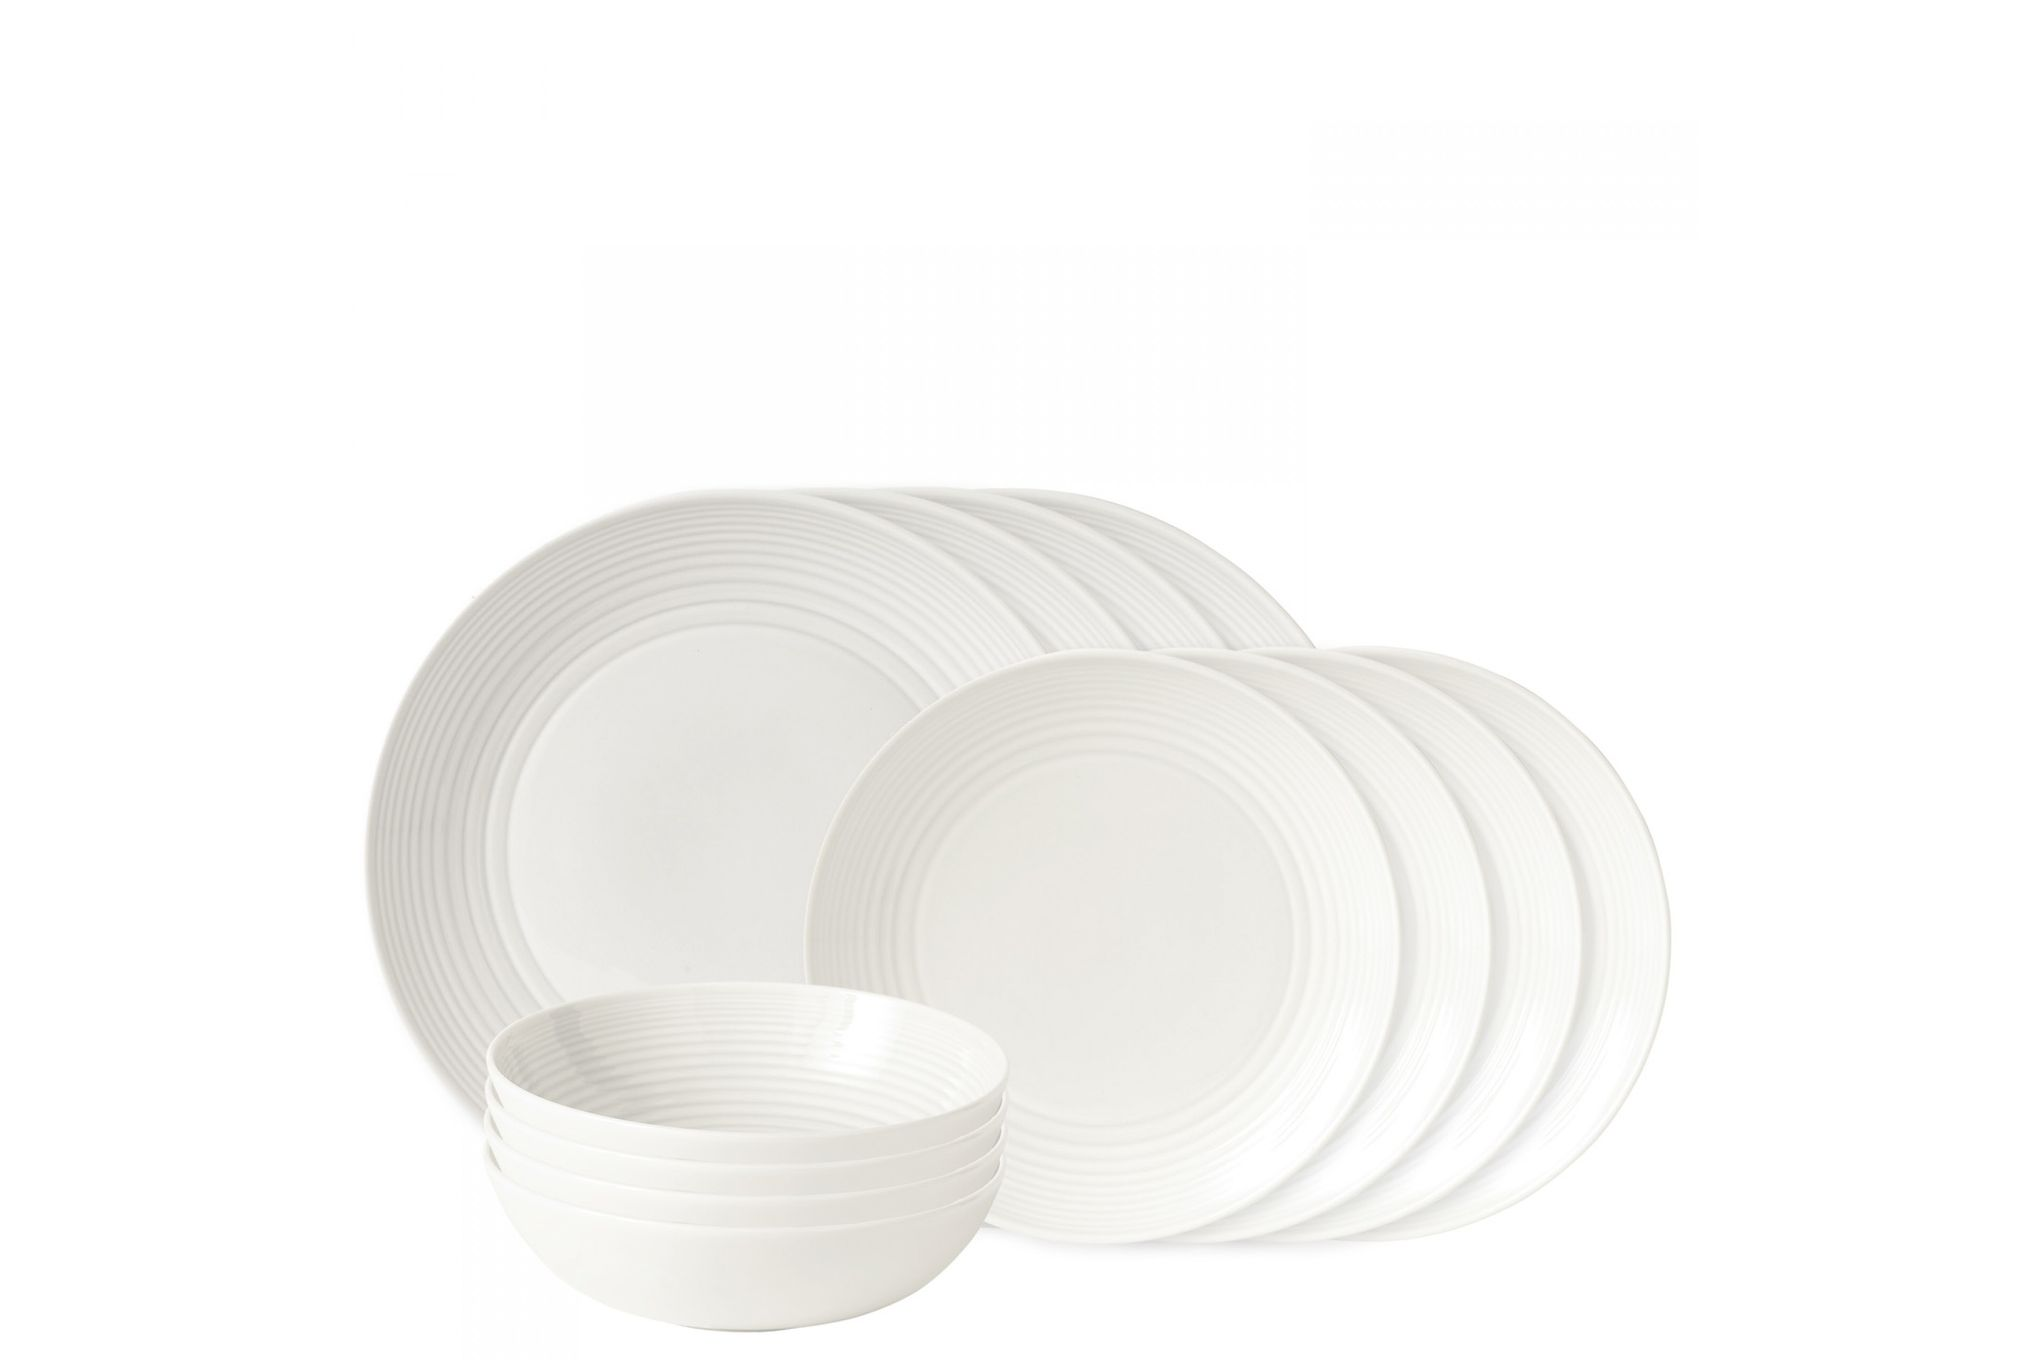 Gordon Ramsay for Royal Doulton Maze White 12 Piece Set 4 x Plate 28cm & 22cm, 4 x Bowl 18cm thumb 1